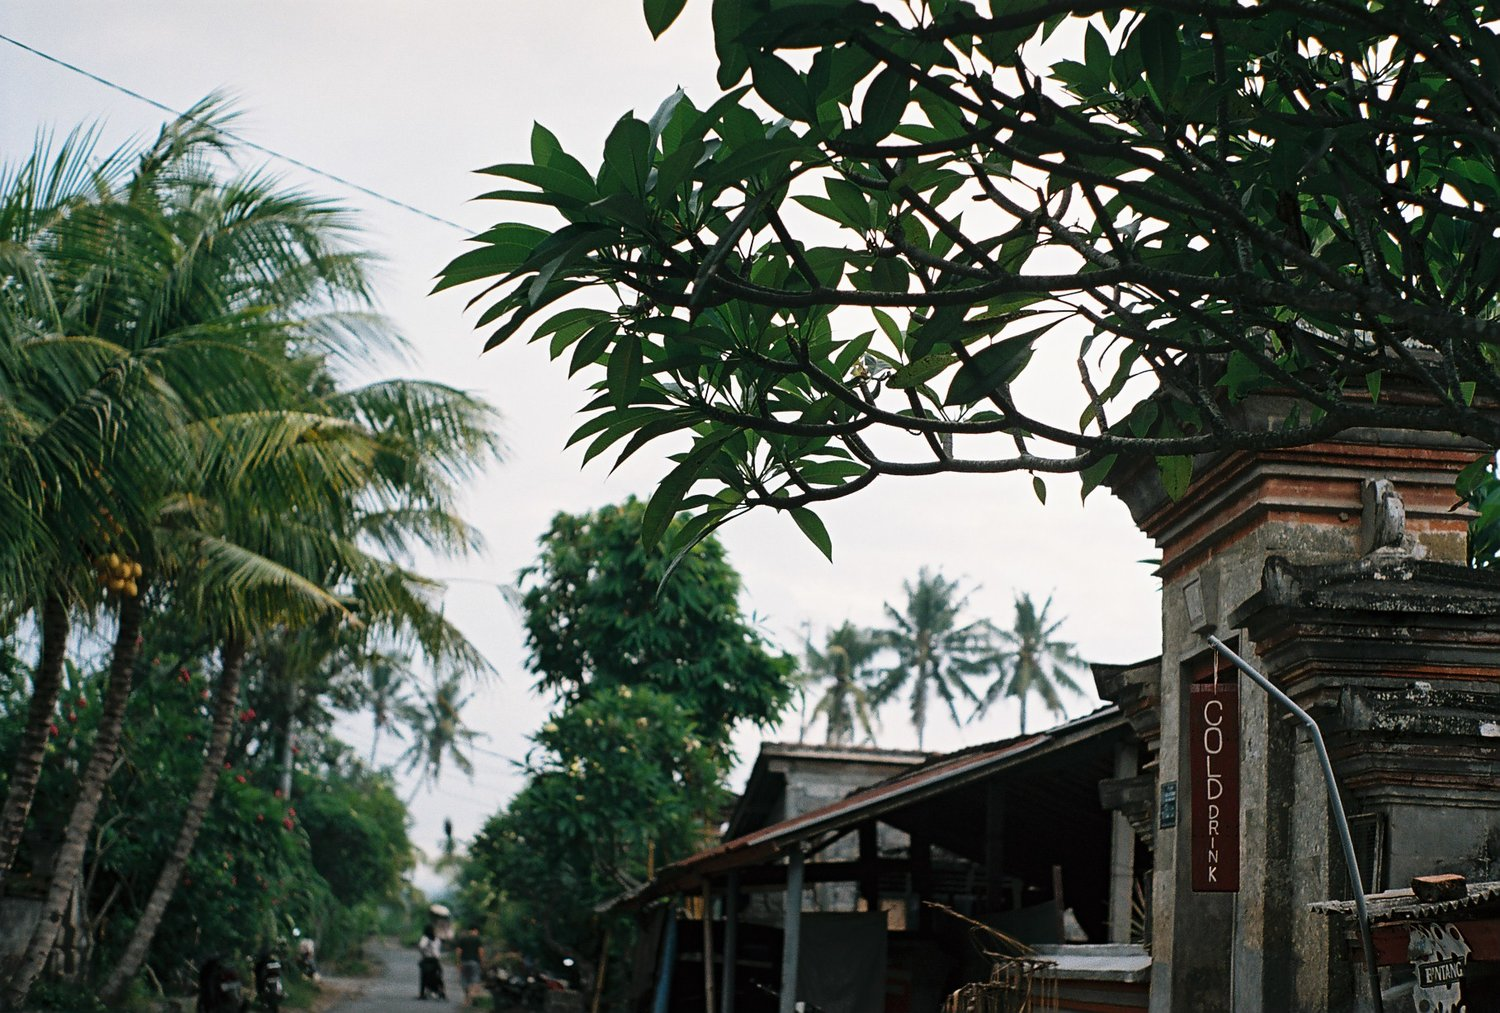 Cold Drink Lodtunduh Ubud Bali Analogue Travel Photographer